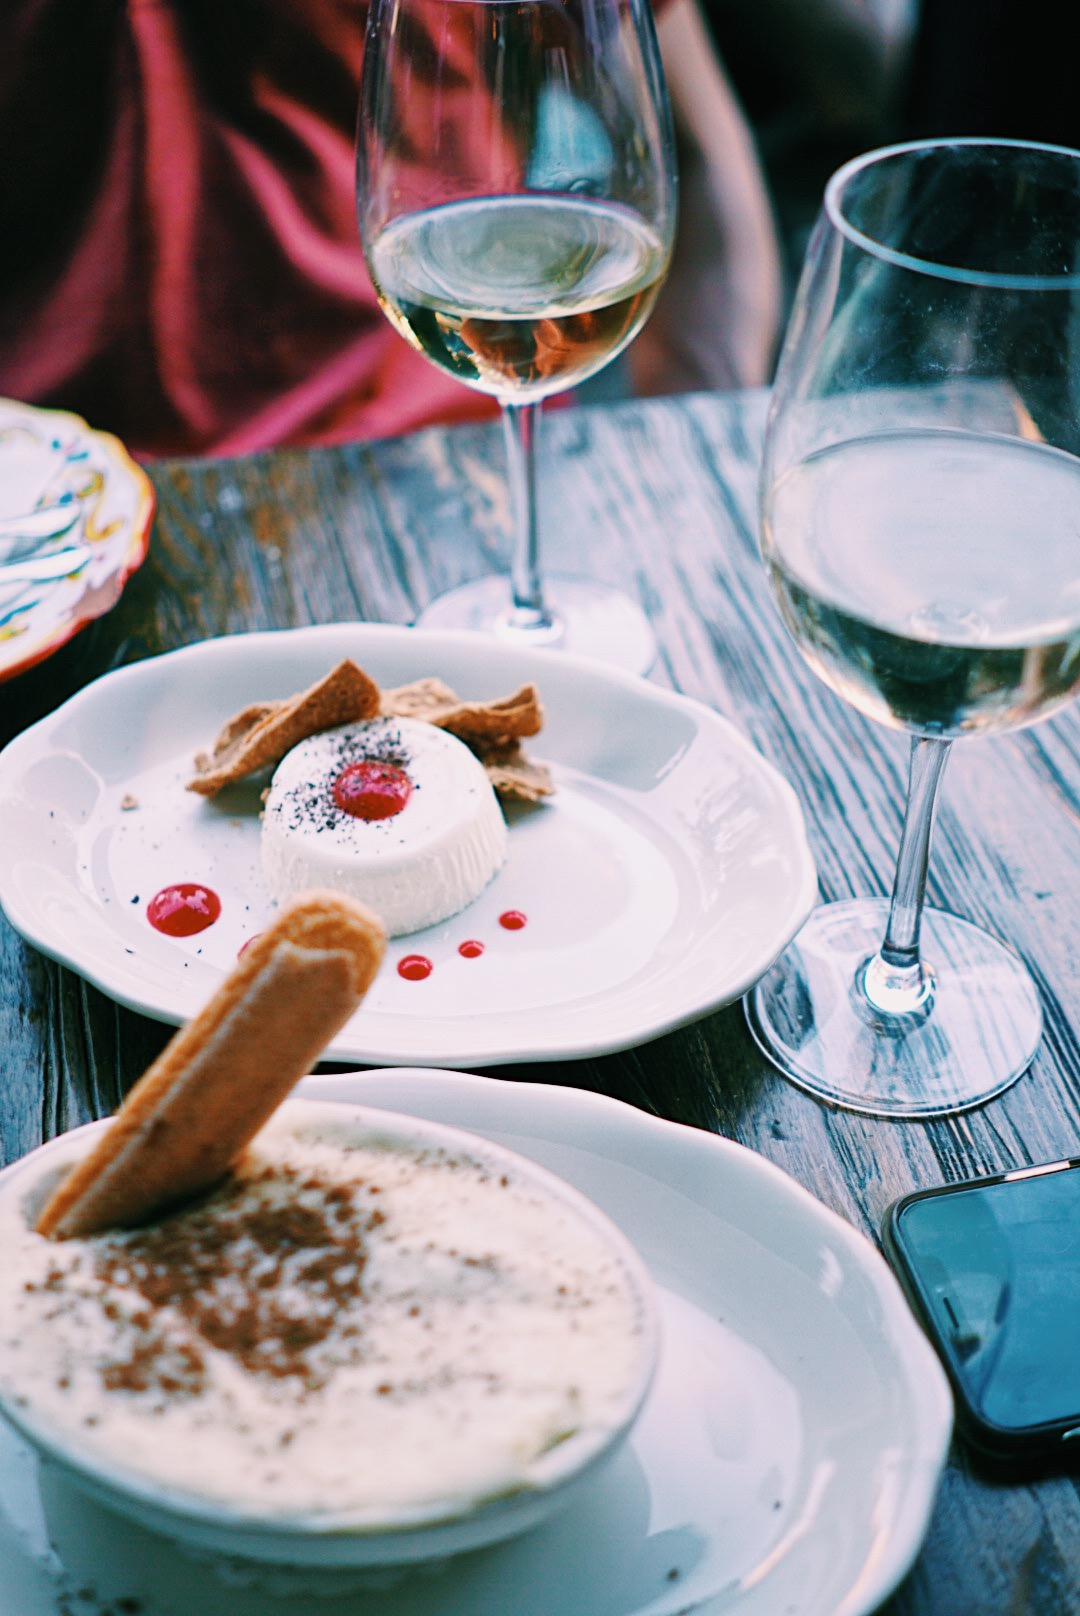 how to become a food photographer how to be a food influencer how to take good food photos food photography tips new york city food photography how to get invited to influencer events